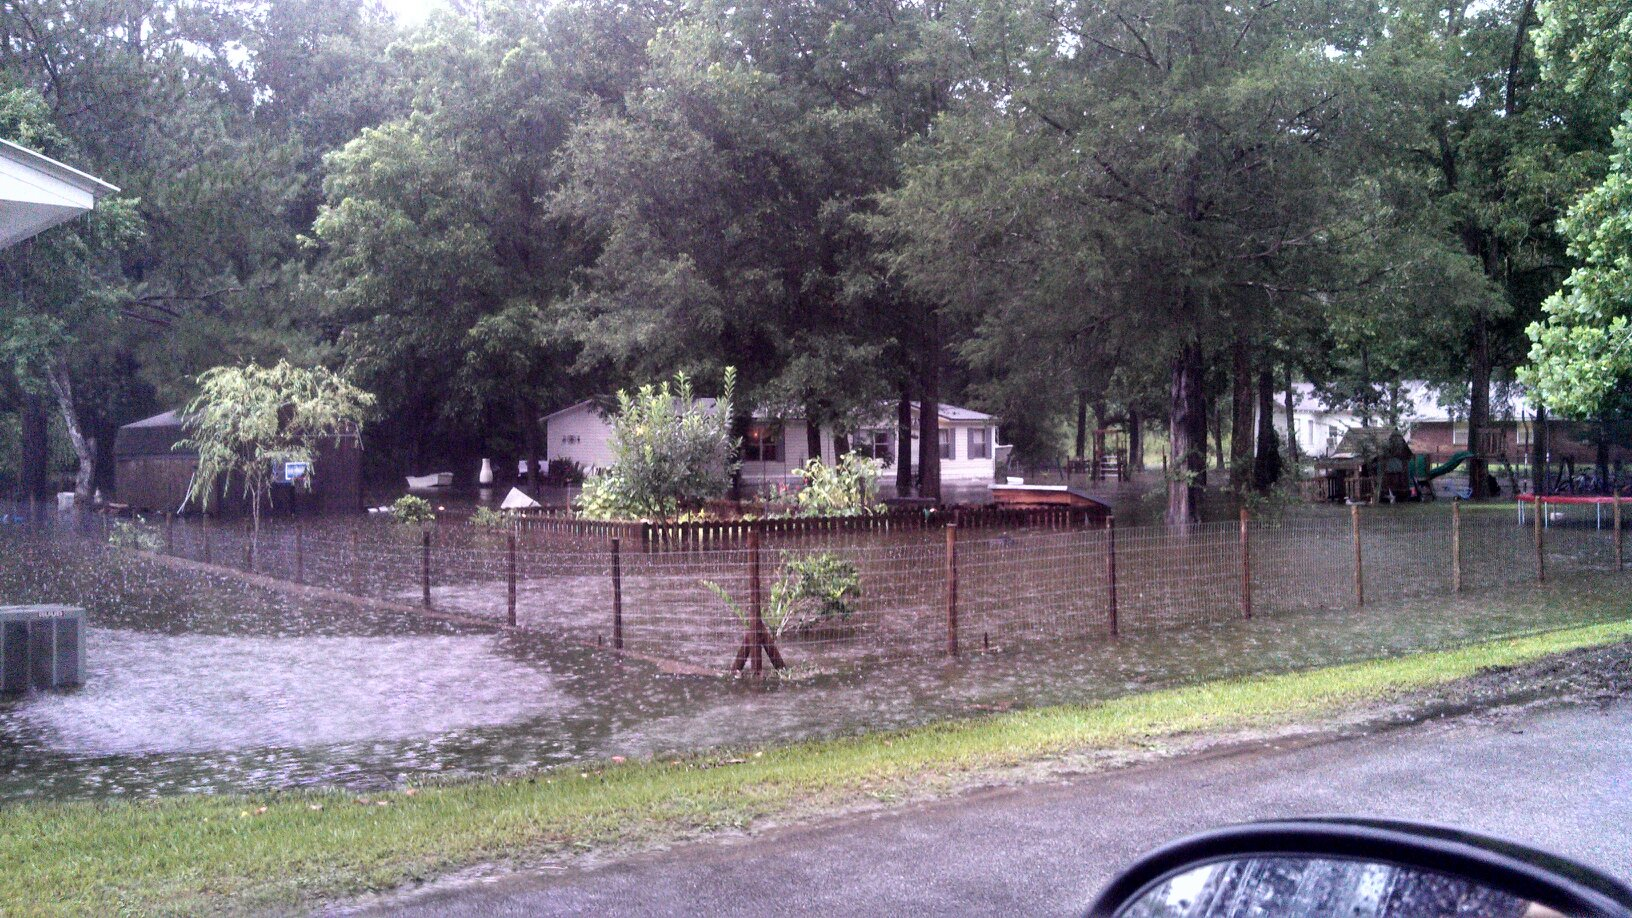 Flood waters surround a home in Vernon, FL on July 3, 2013.